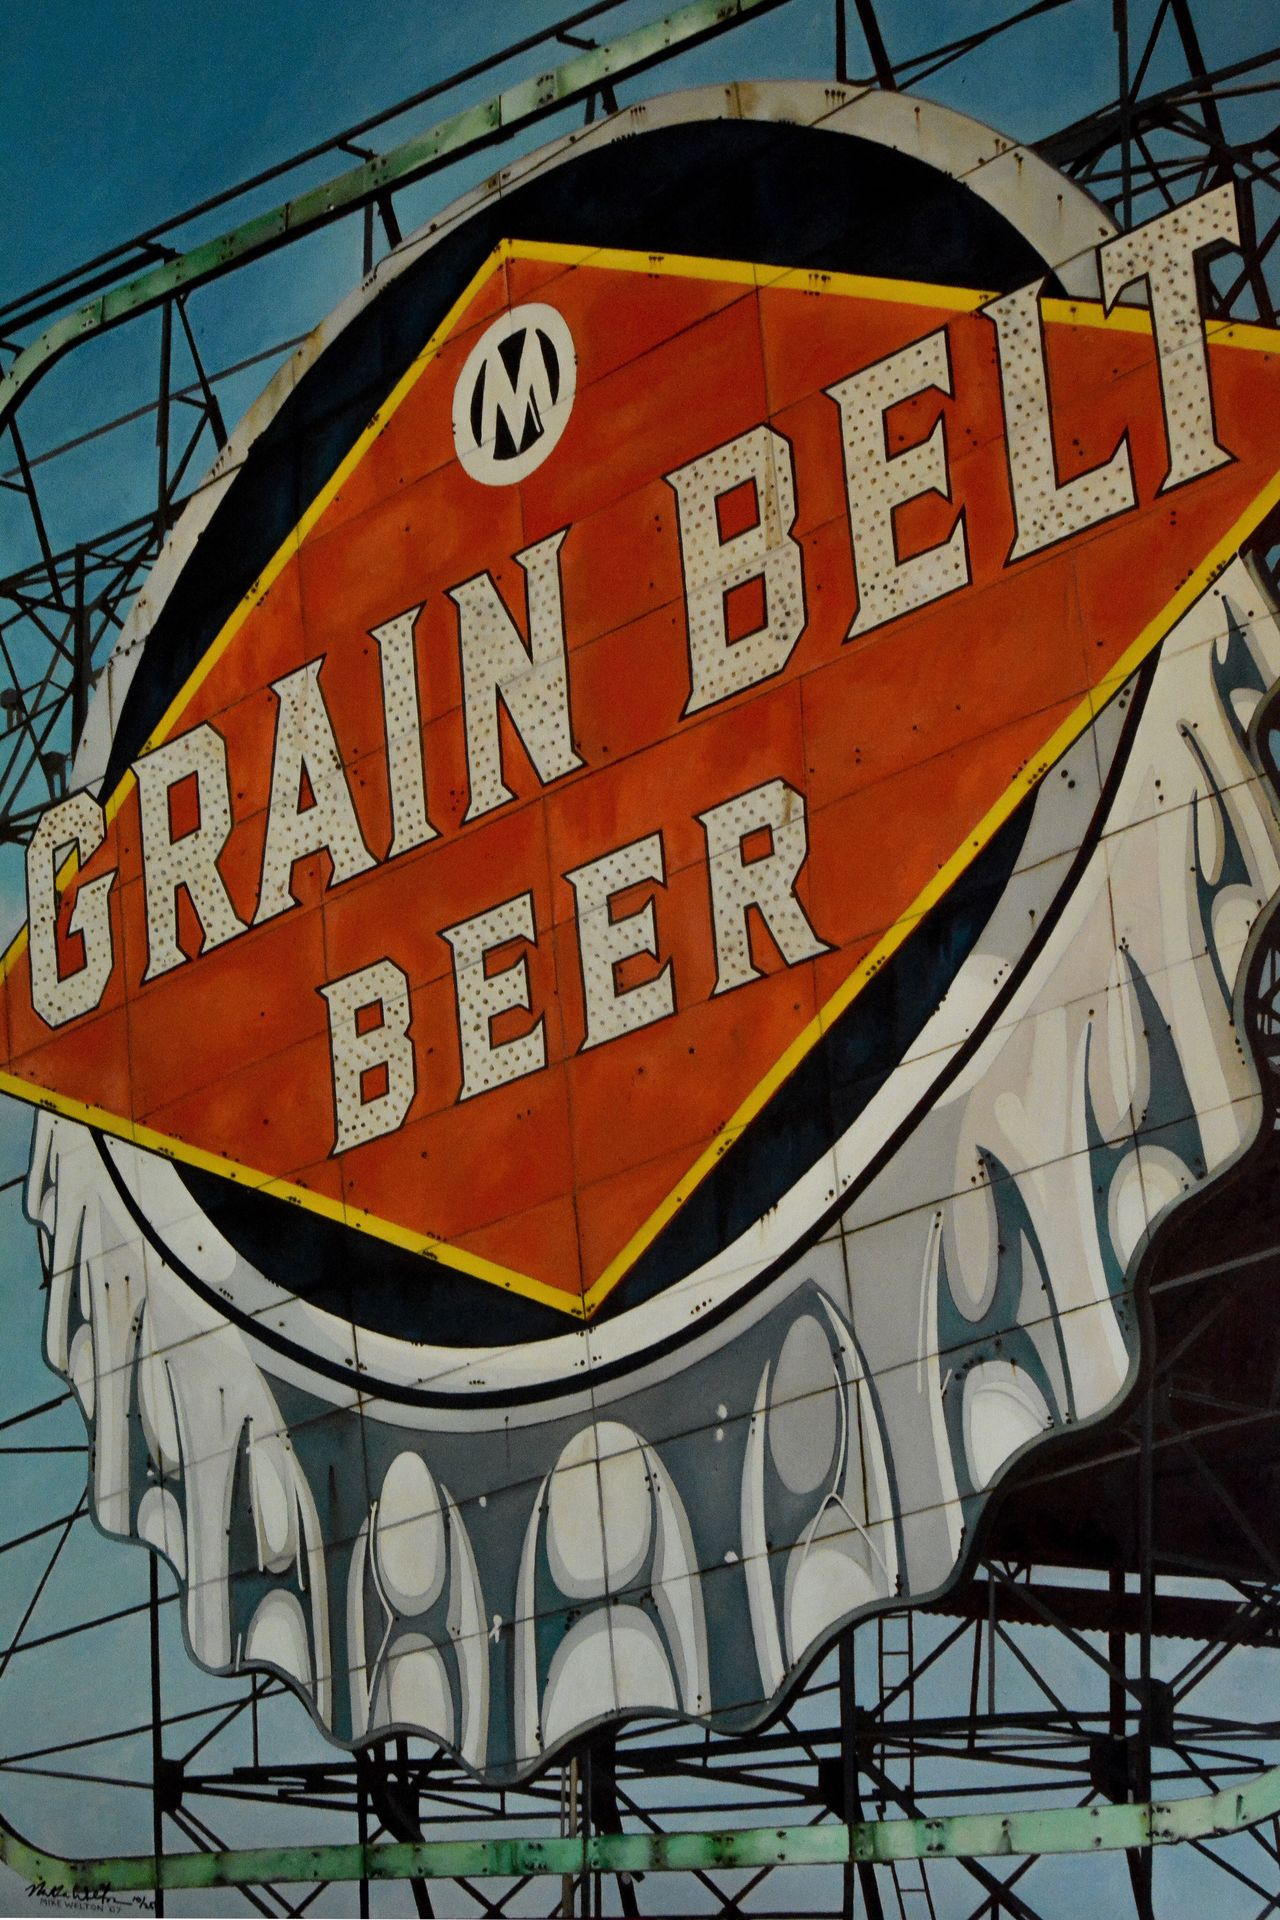 Grain Belt Beer Grain Belt Beer Sign Signage Minneapolis DowntownMPLS Iconic Urban Urban Landscape Urban Icon Old Historic Painting Likeness Sam Kratzer